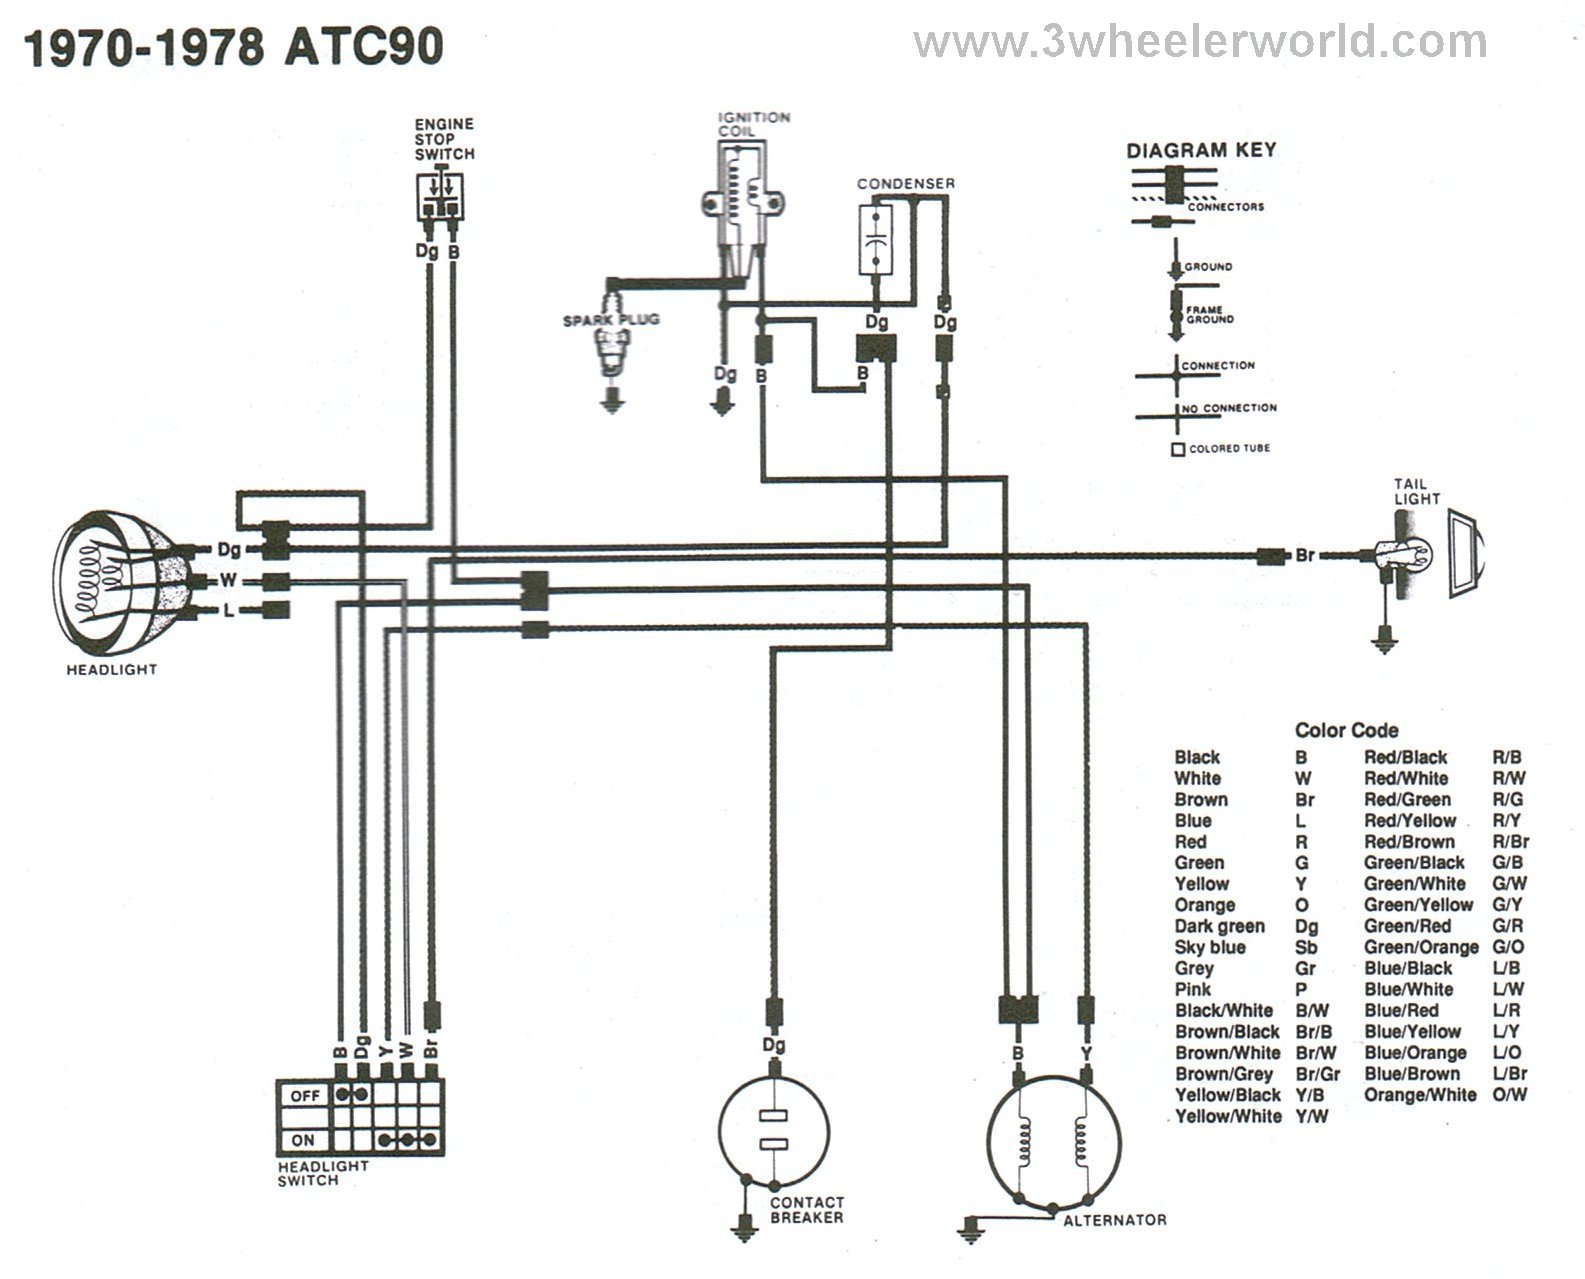 D No Reverse Reverse Switch additionally Honda Trx S Trx Fm Trx Es Trx Fe Fourtrax Foreman Atv Service Repair Manual Download likewise D Line Wiring Diagrams Wireing likewise Wiring Ace Wiring together with Af Bd Ff Be. on honda 300 4x4 wiring diagrams